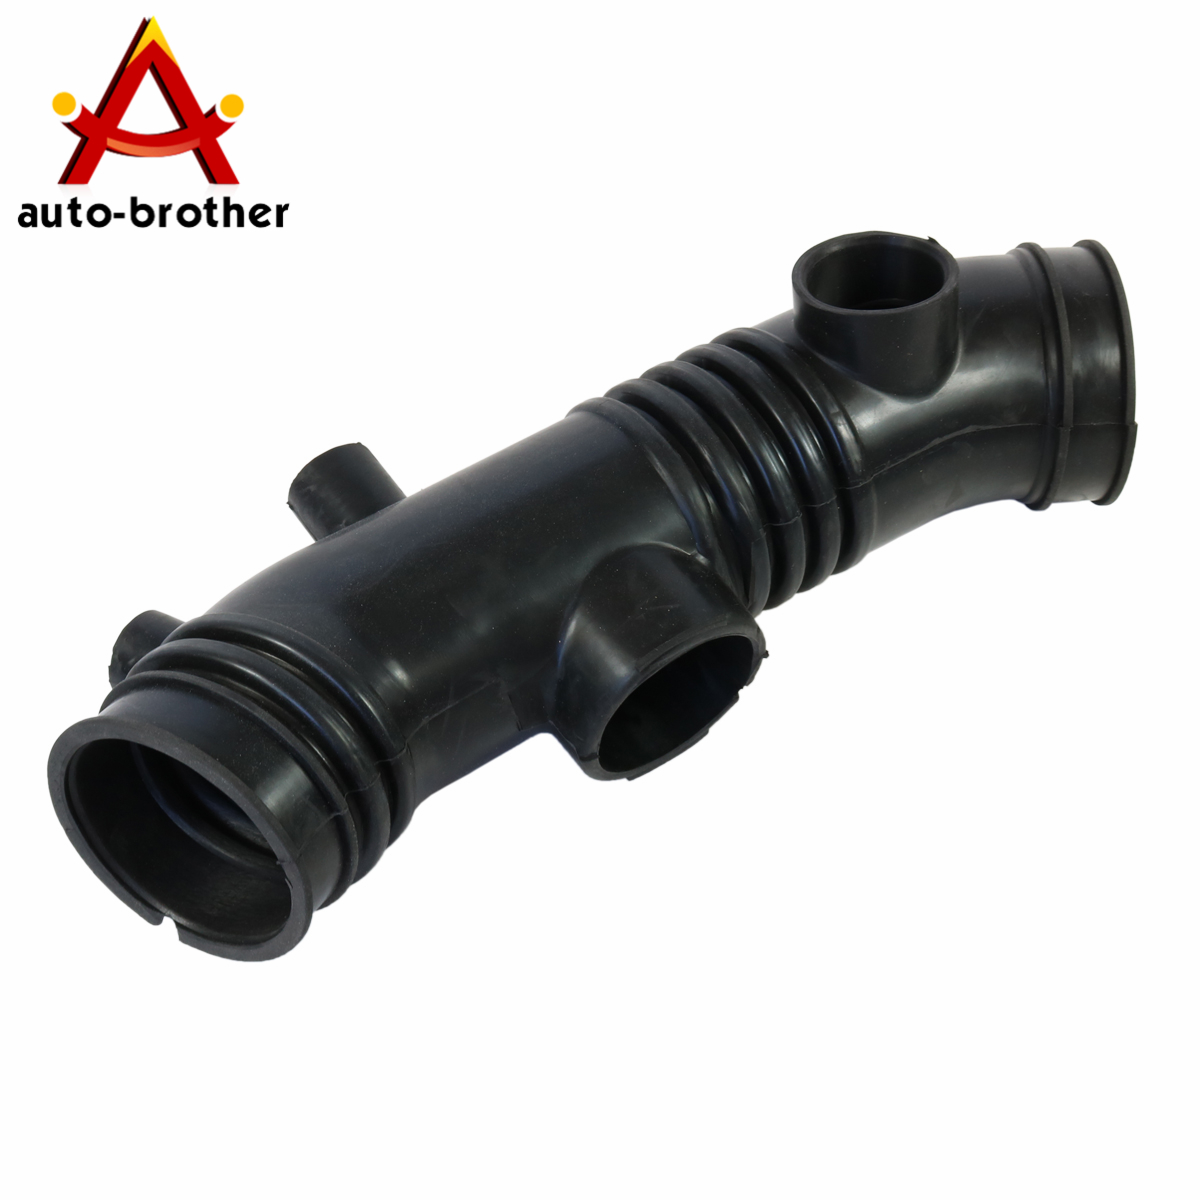 New AIR INTAKE HOSE 17881-62091 For Toyota 96 97 98 4RUNNER 3.4L 5VZFE US